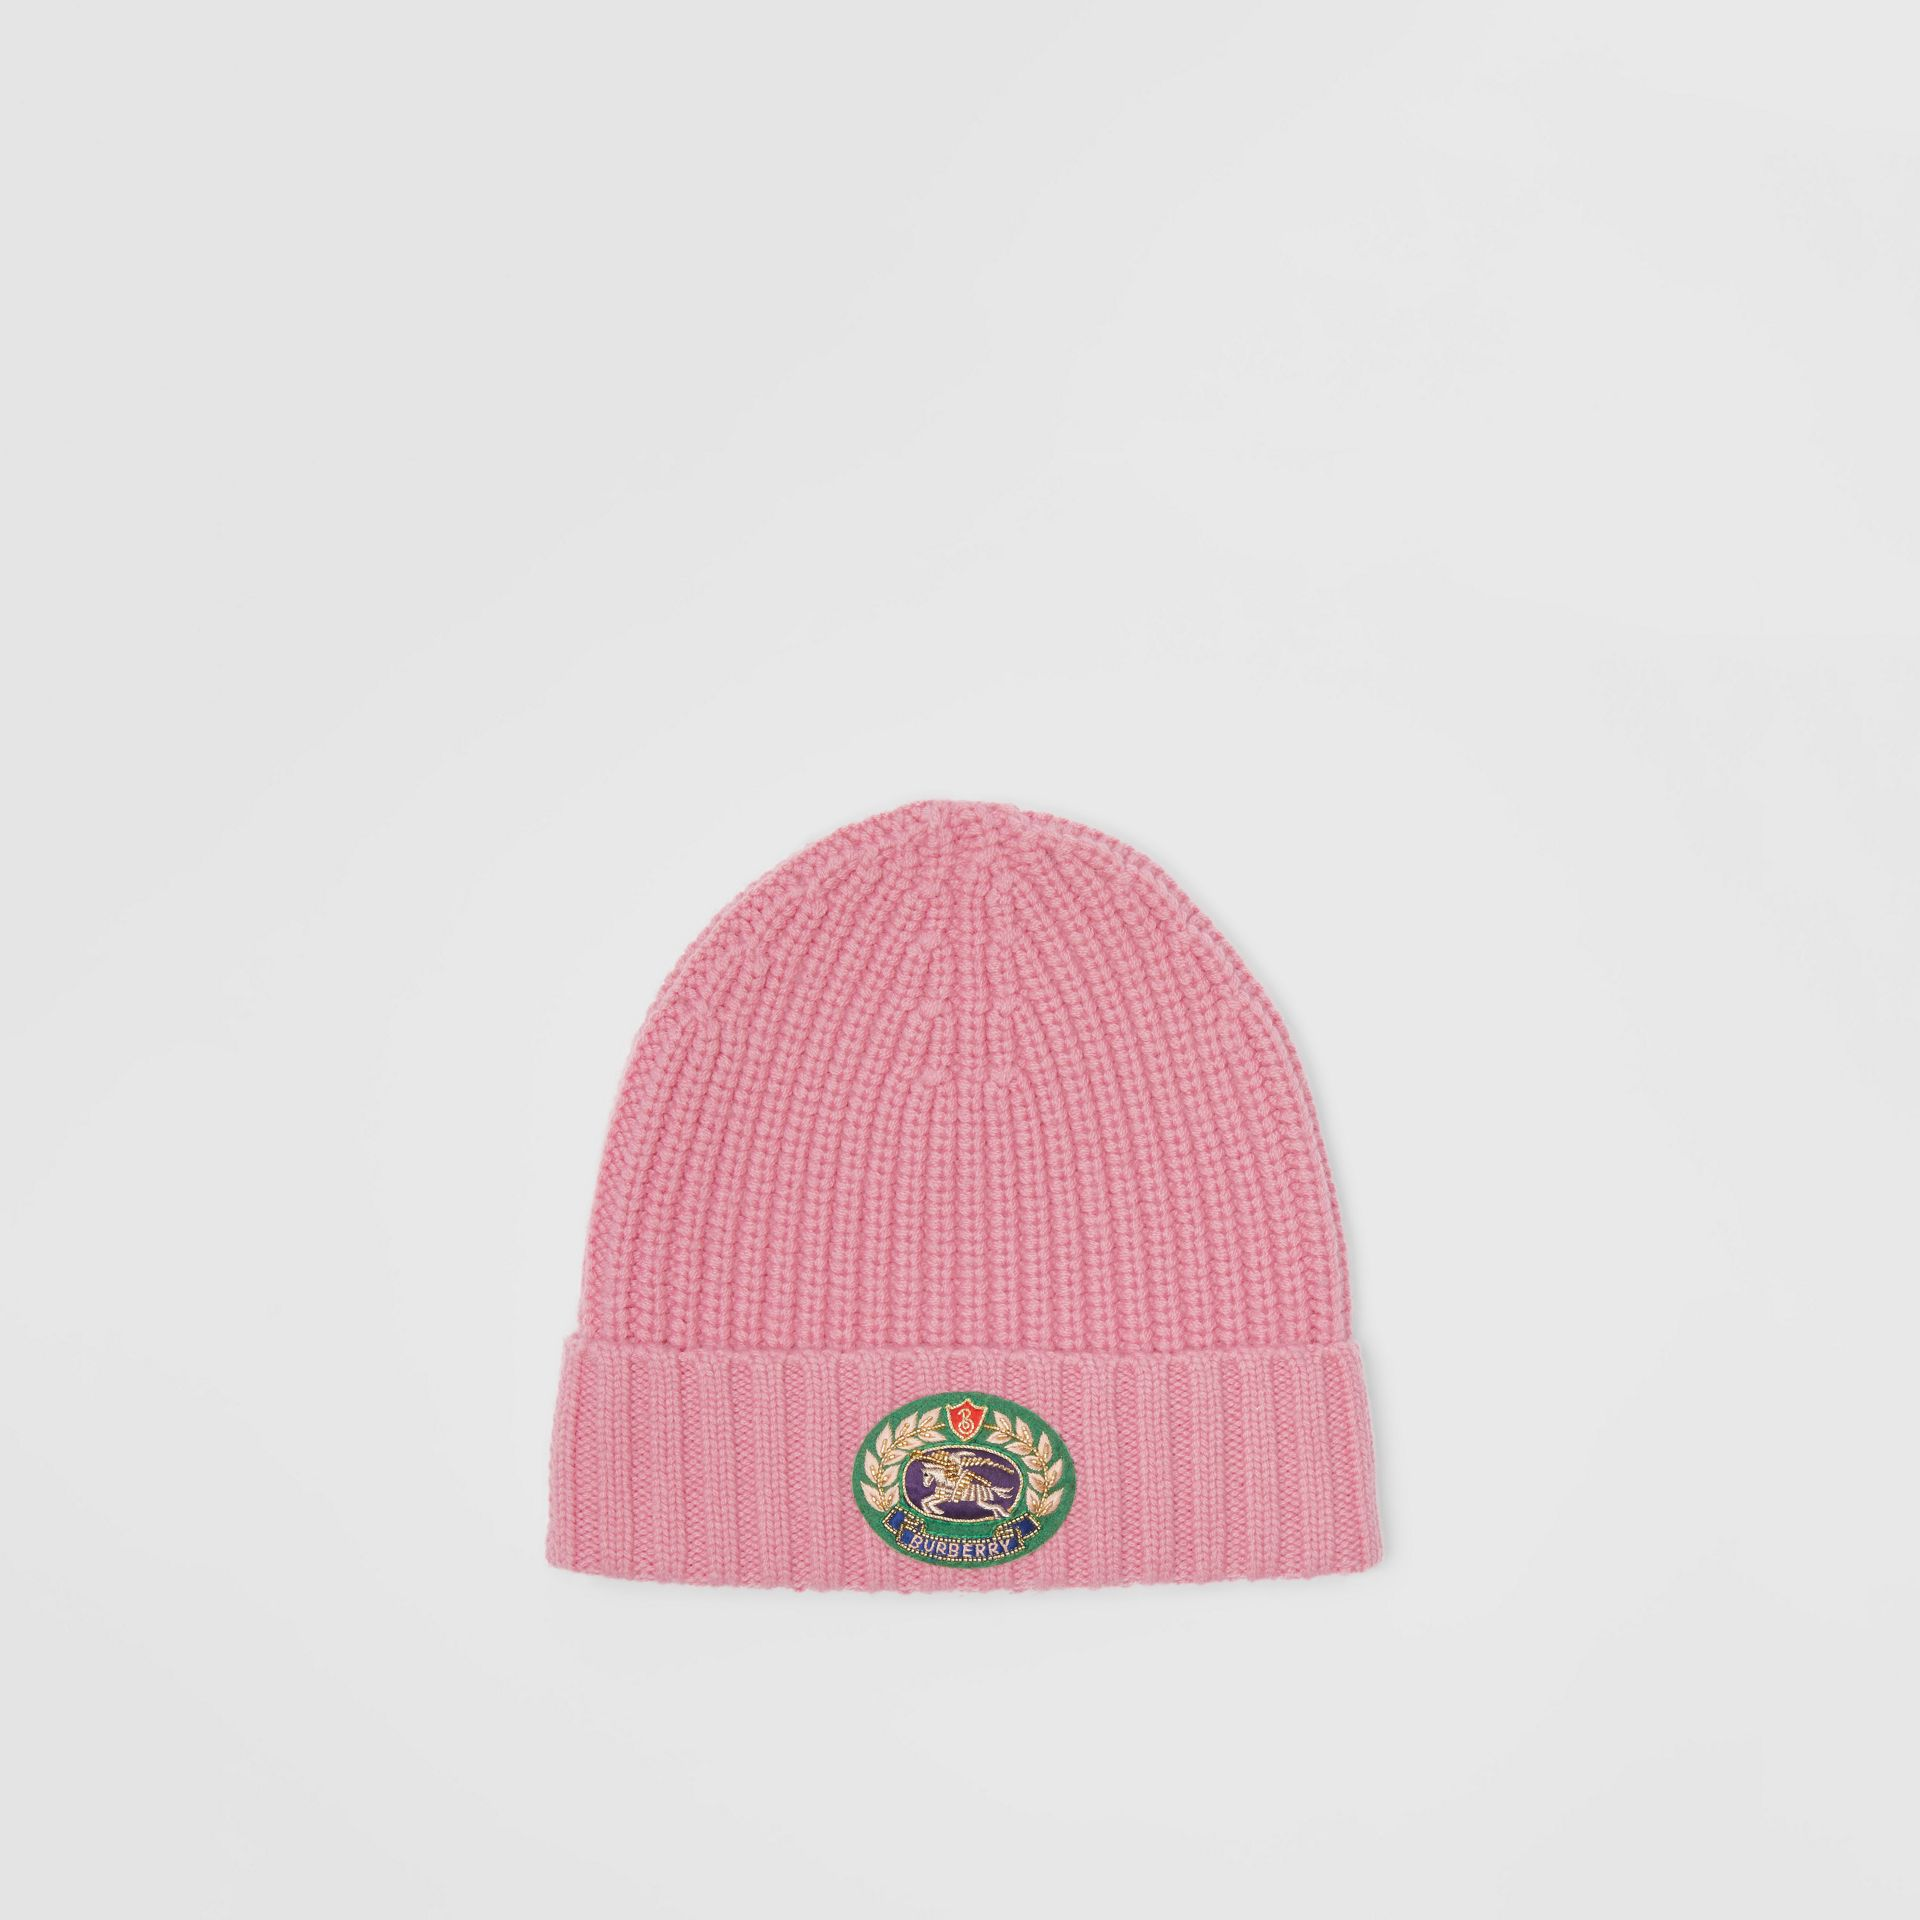 Embroidered Crest Rib Knit Wool Cashmere Beanie in Rose Pink | Burberry - gallery image 0